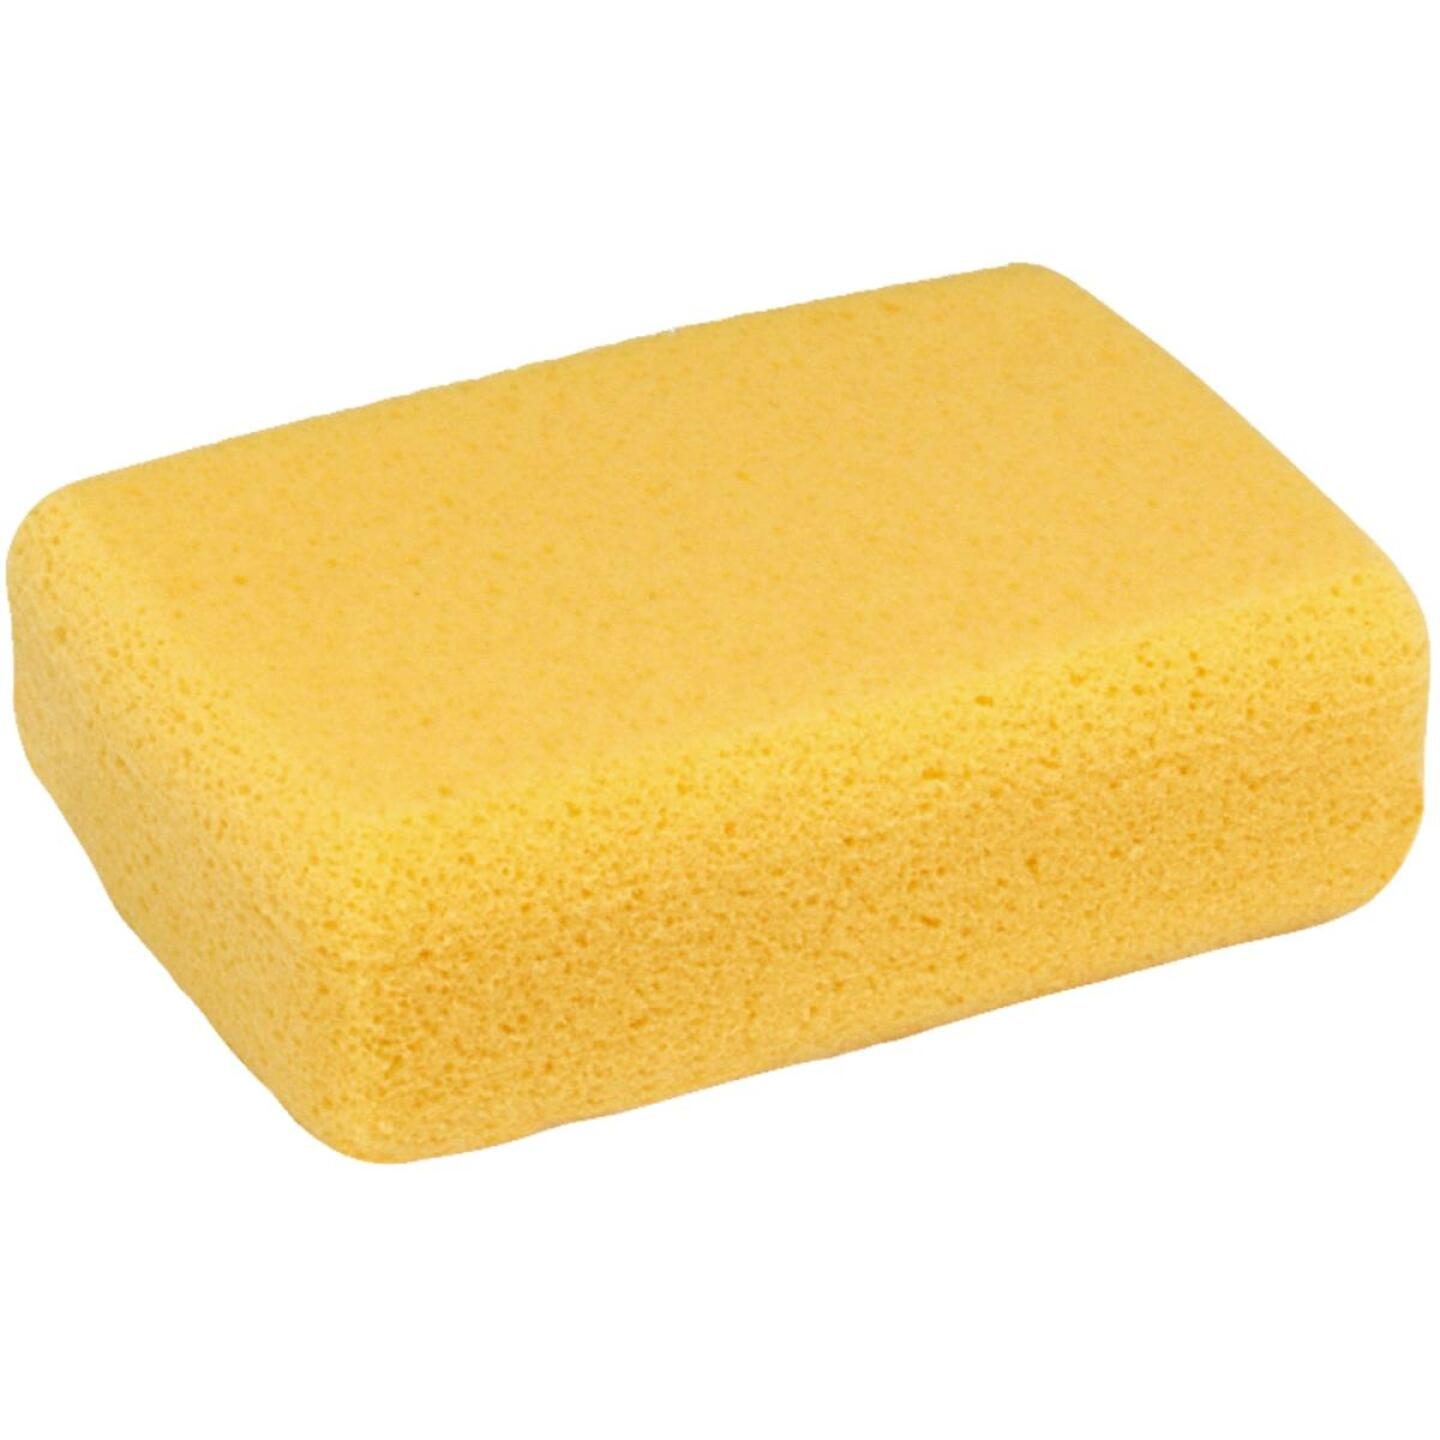 Marshalltown 7-1/4 In. L Hydra Tile Grout Sponge Image 1